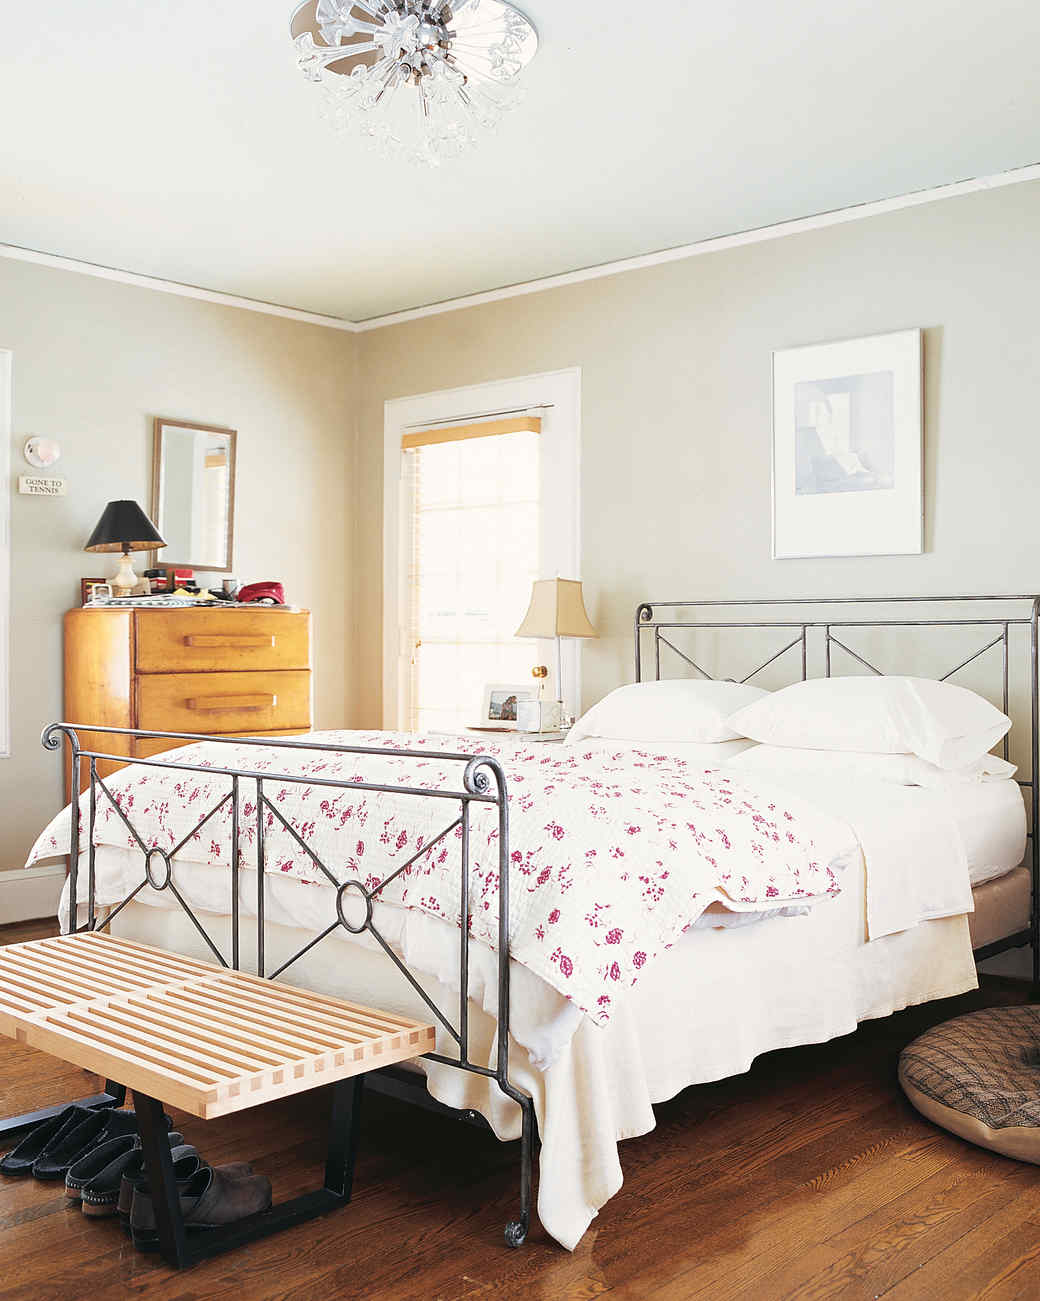 Bright Ideas for a BudgetFriendly Master Bedroom Makeover